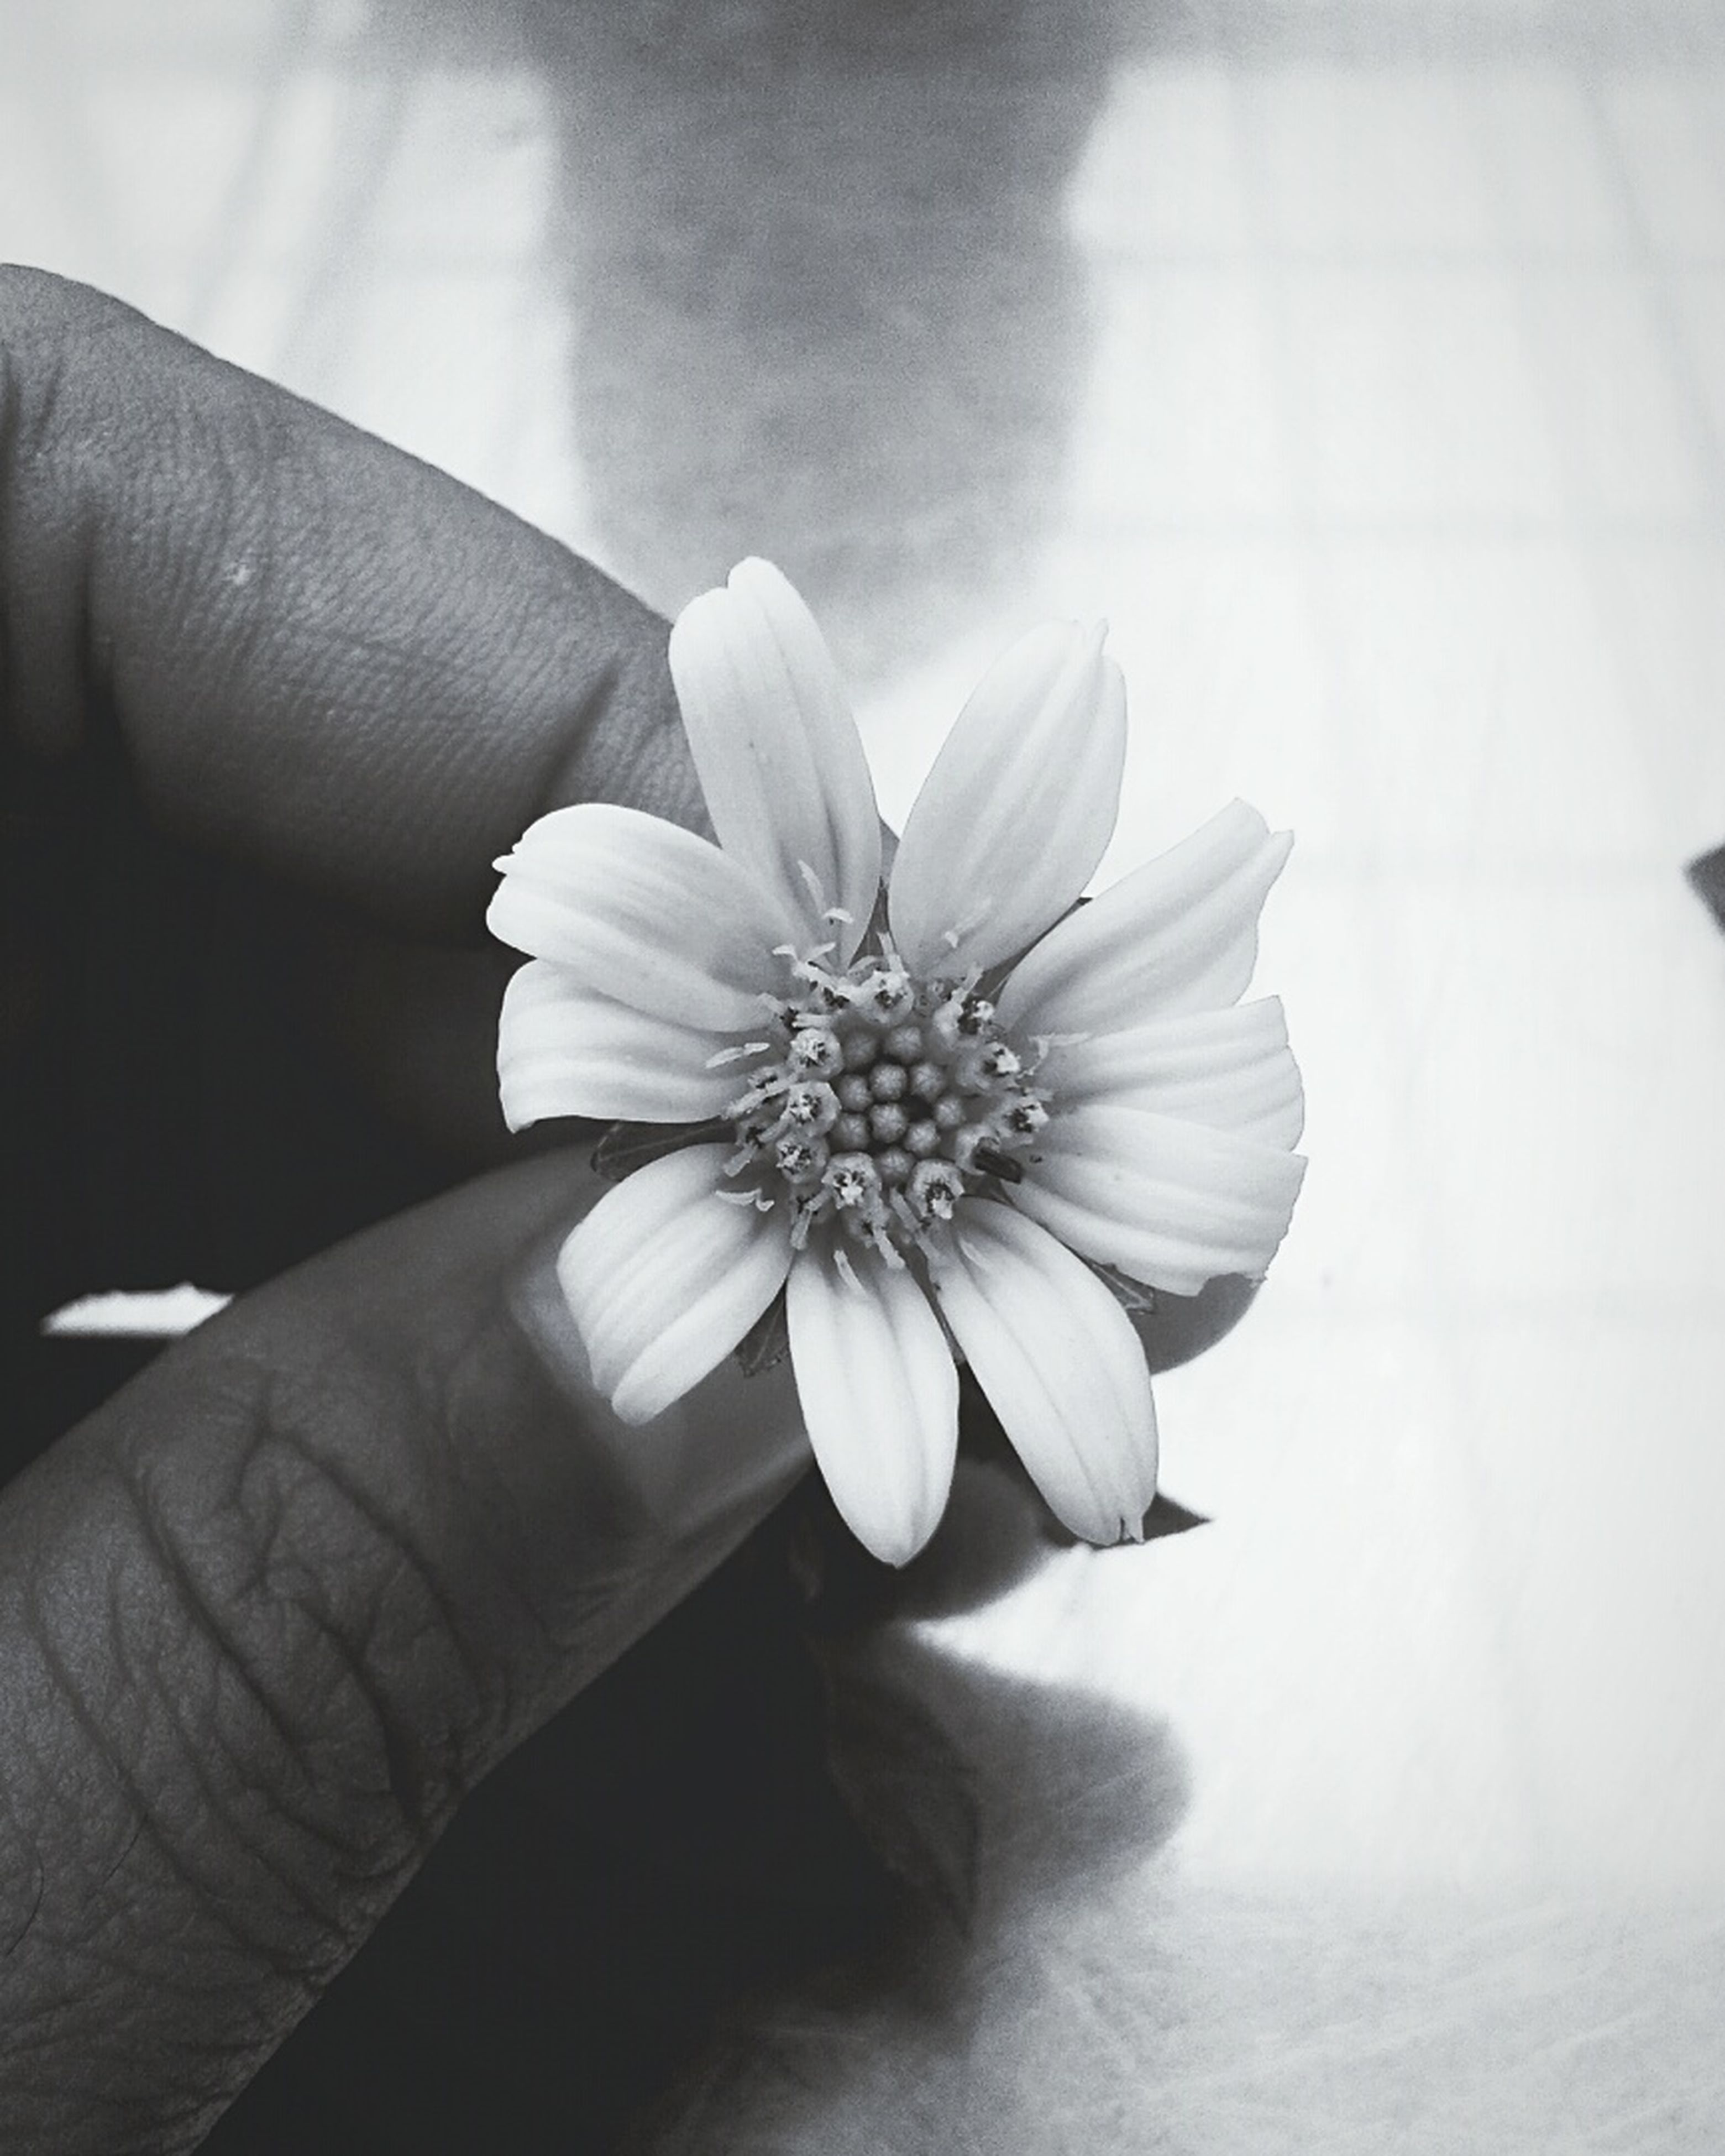 person, flower, holding, petal, part of, freshness, cropped, flower head, human finger, fragility, single flower, personal perspective, unrecognizable person, close-up, indoors, pollen, focus on foreground